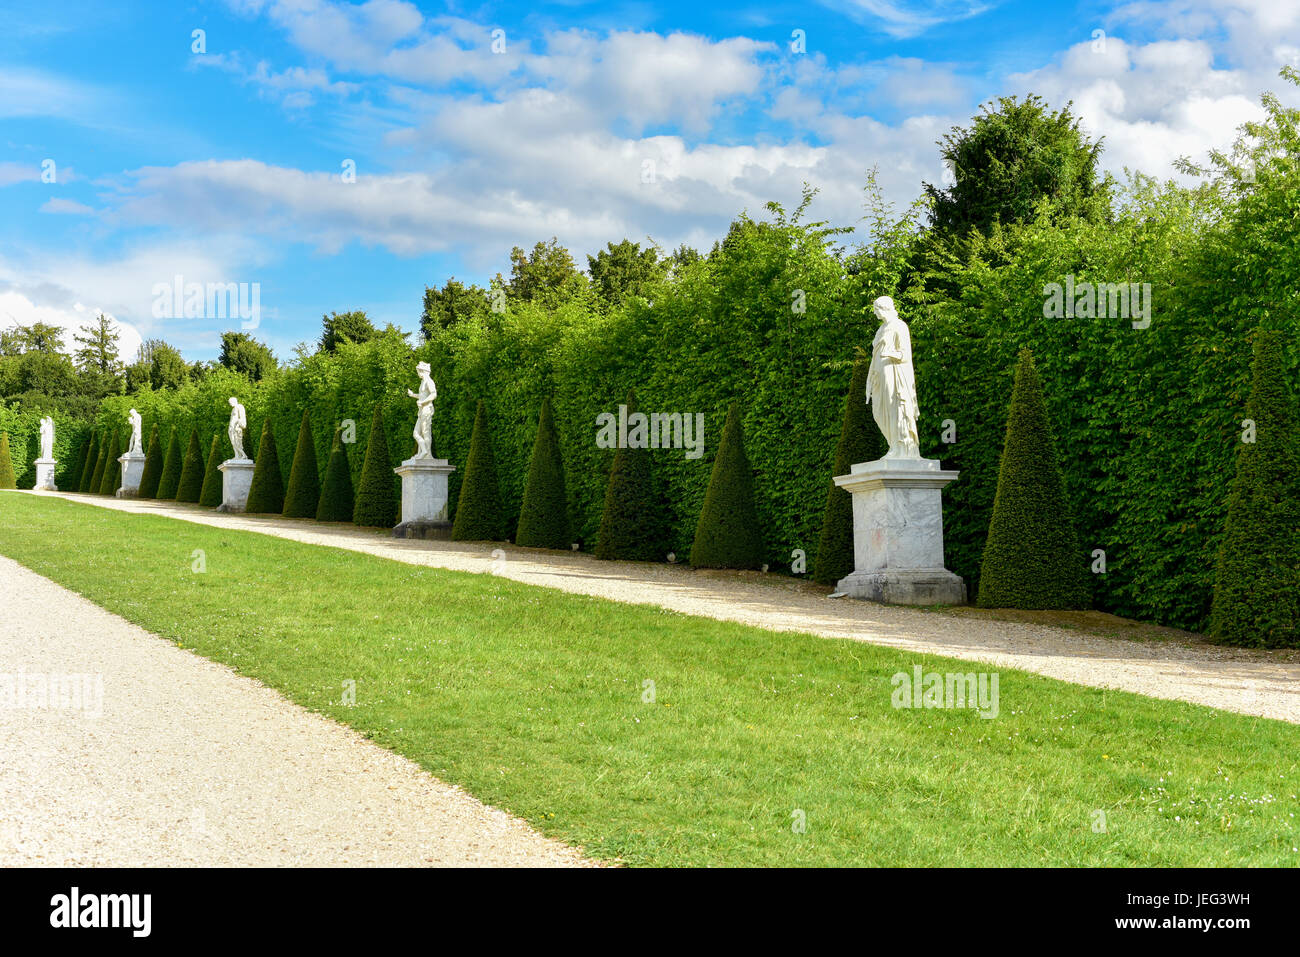 The famous Palace of Versailles in France. Stock Photo